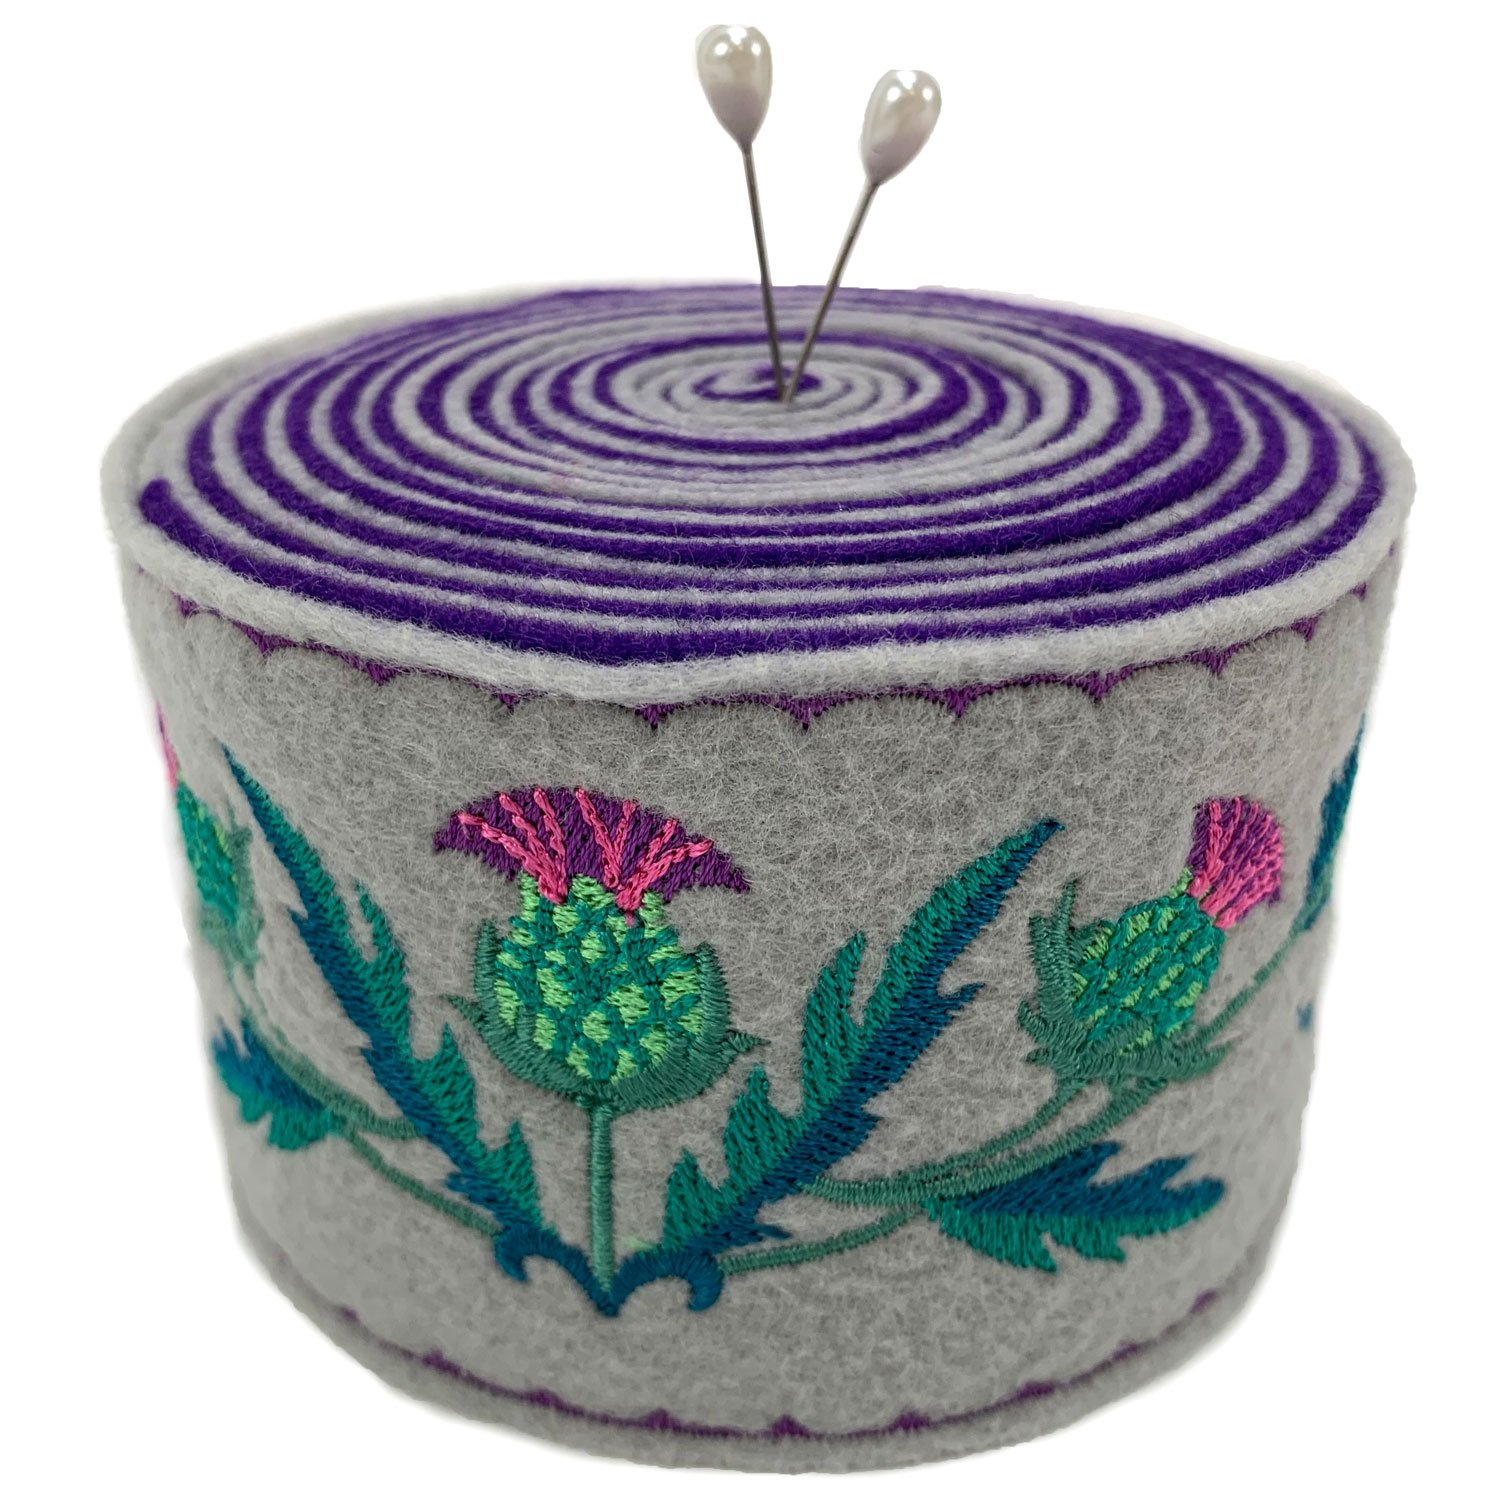 Embroidered Felt Pincushion Thistles